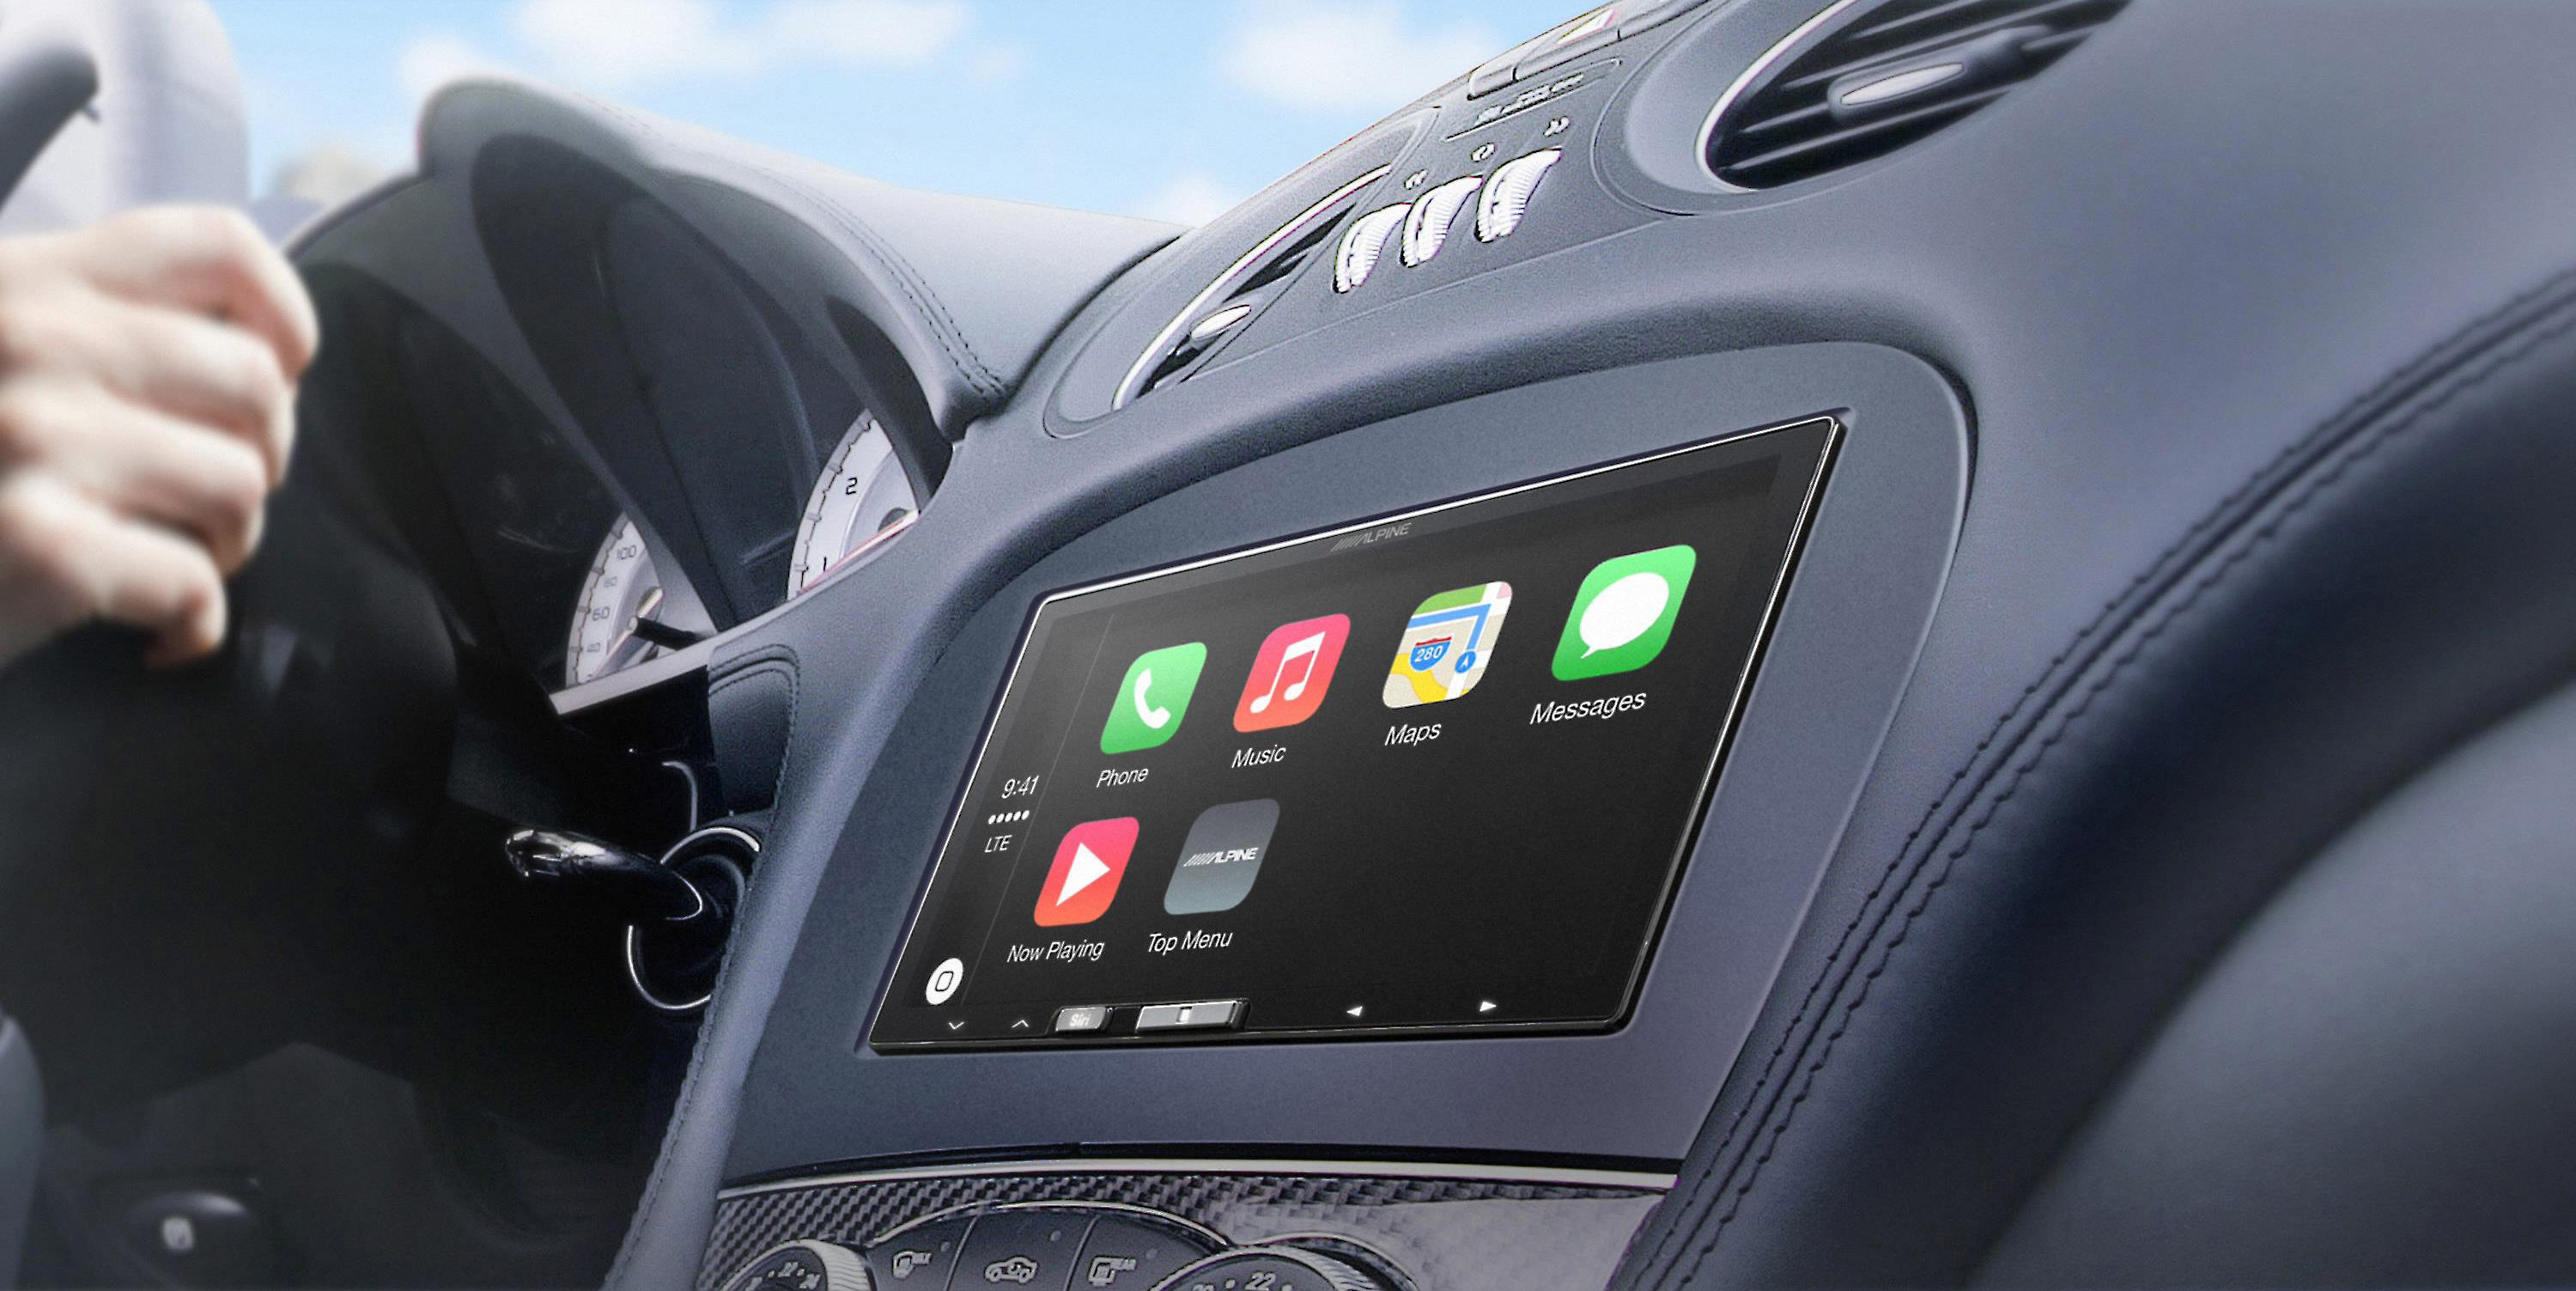 The First Aftermarket Wireless CarPlay System, Alpine's iLX-107, Hits the Market